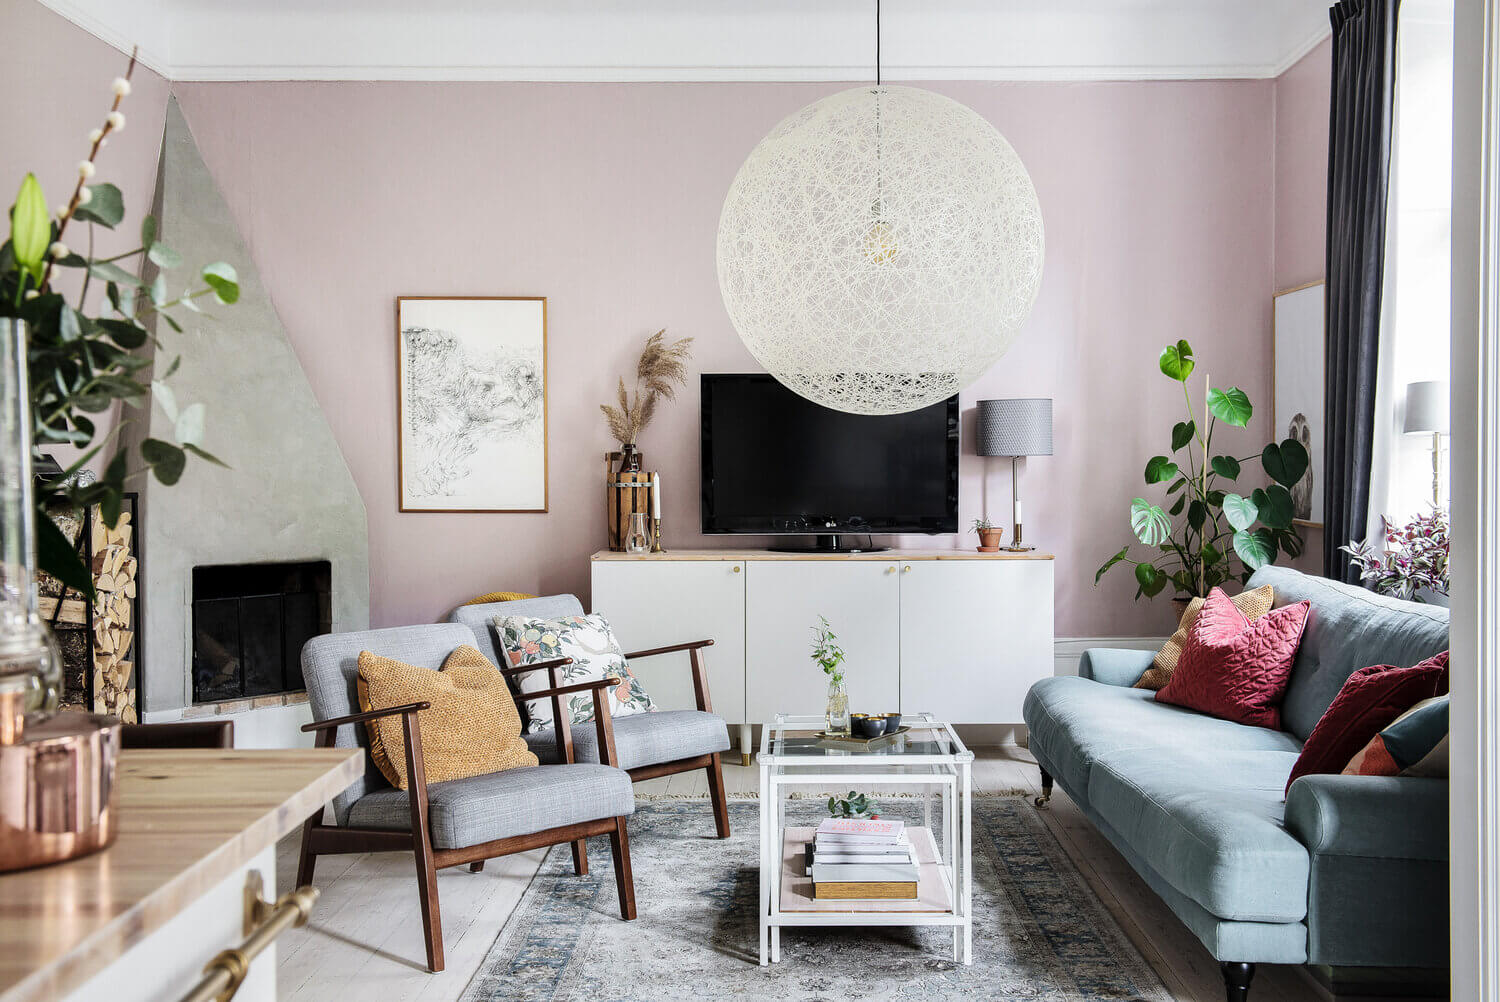 A Bright Pink and Blue Scandinavian Apartment